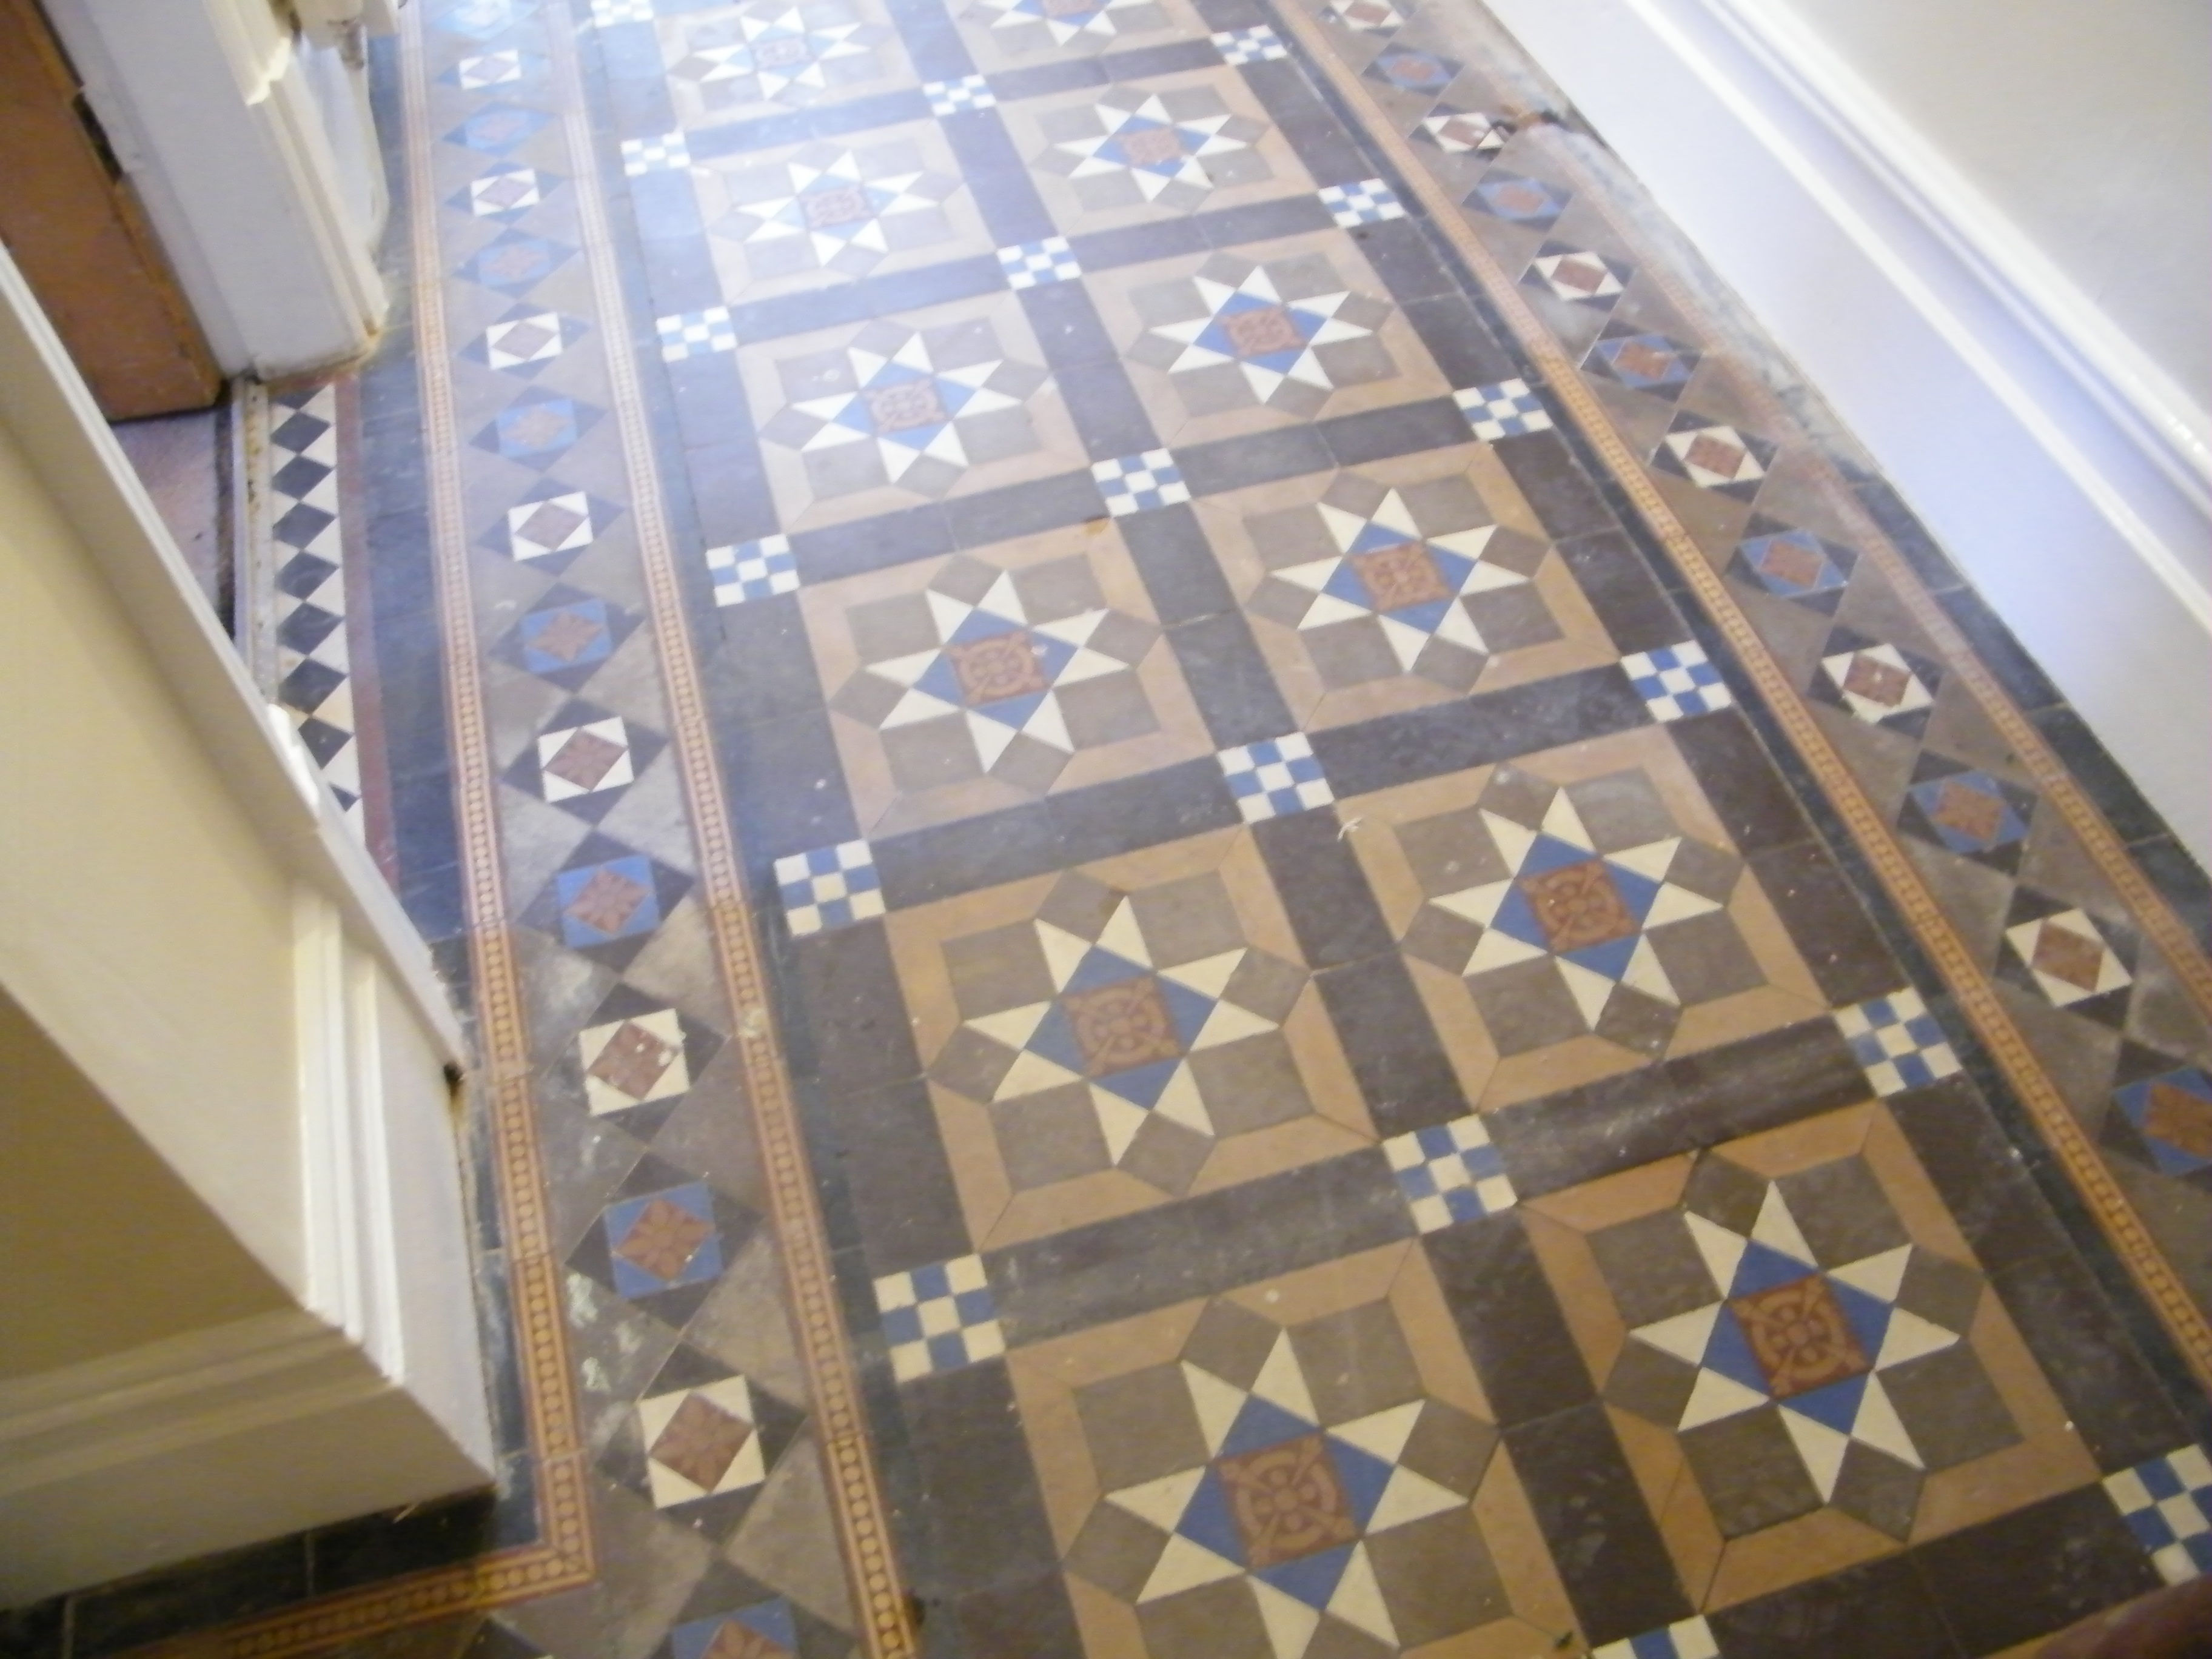 Victorian Hall Floor Cleaning And Sealing In Macclesfield Cheshire